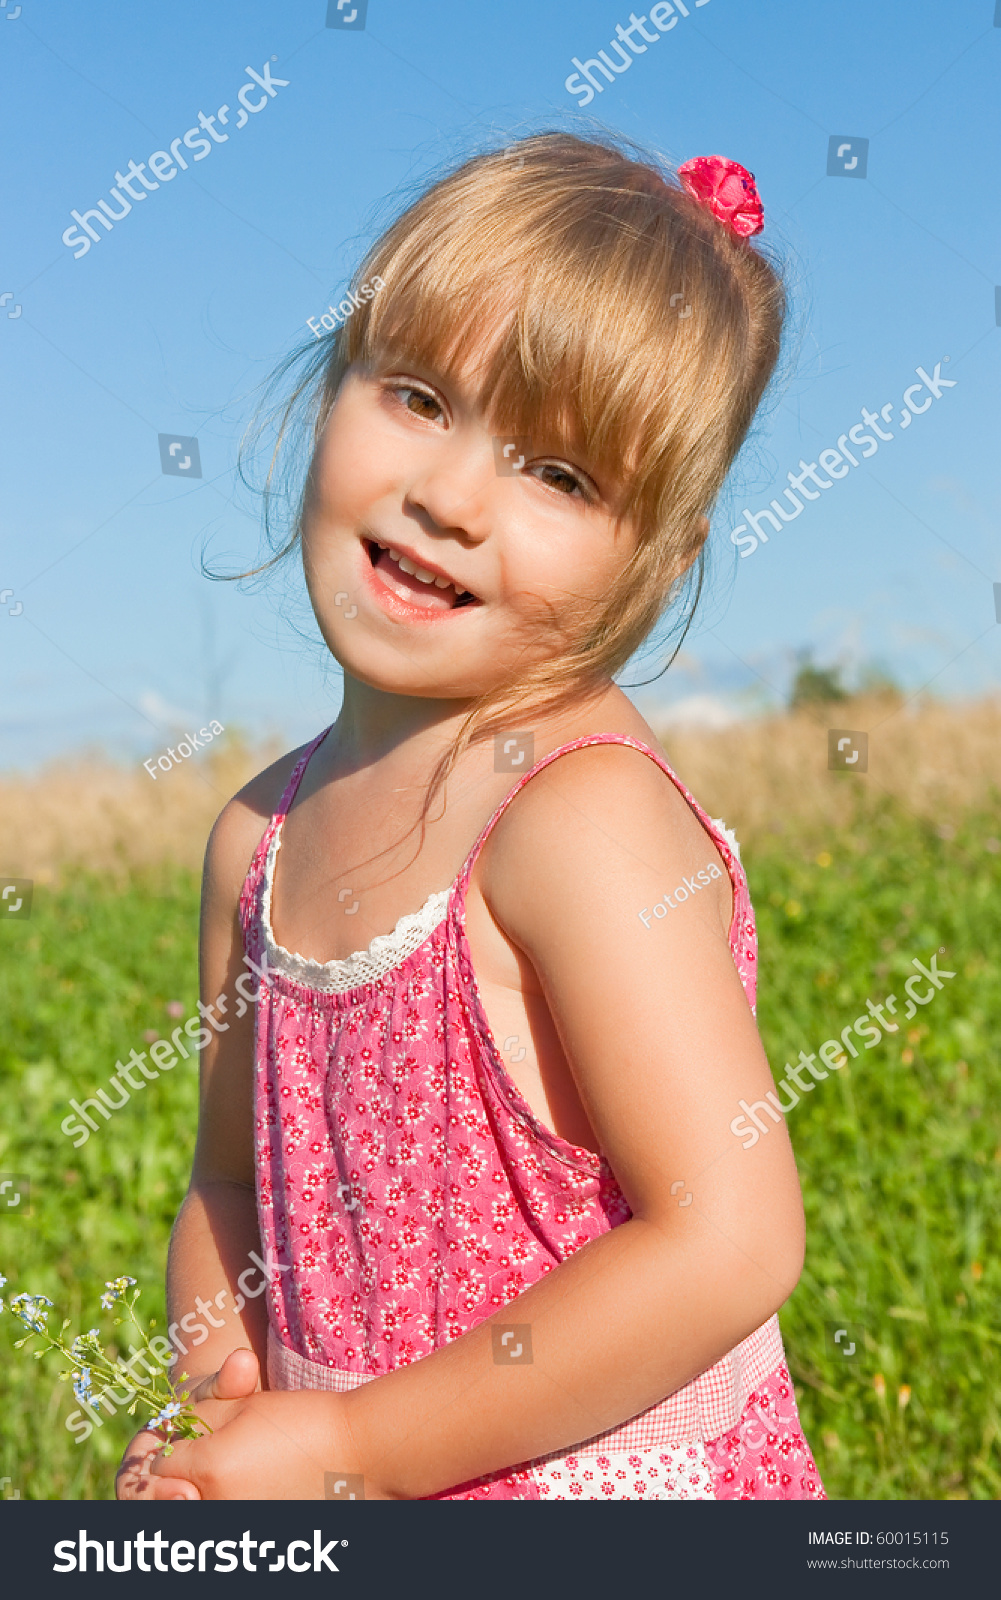 Funny Girl In A Pink Dress With Flowers Stock Photo ... - photo#11